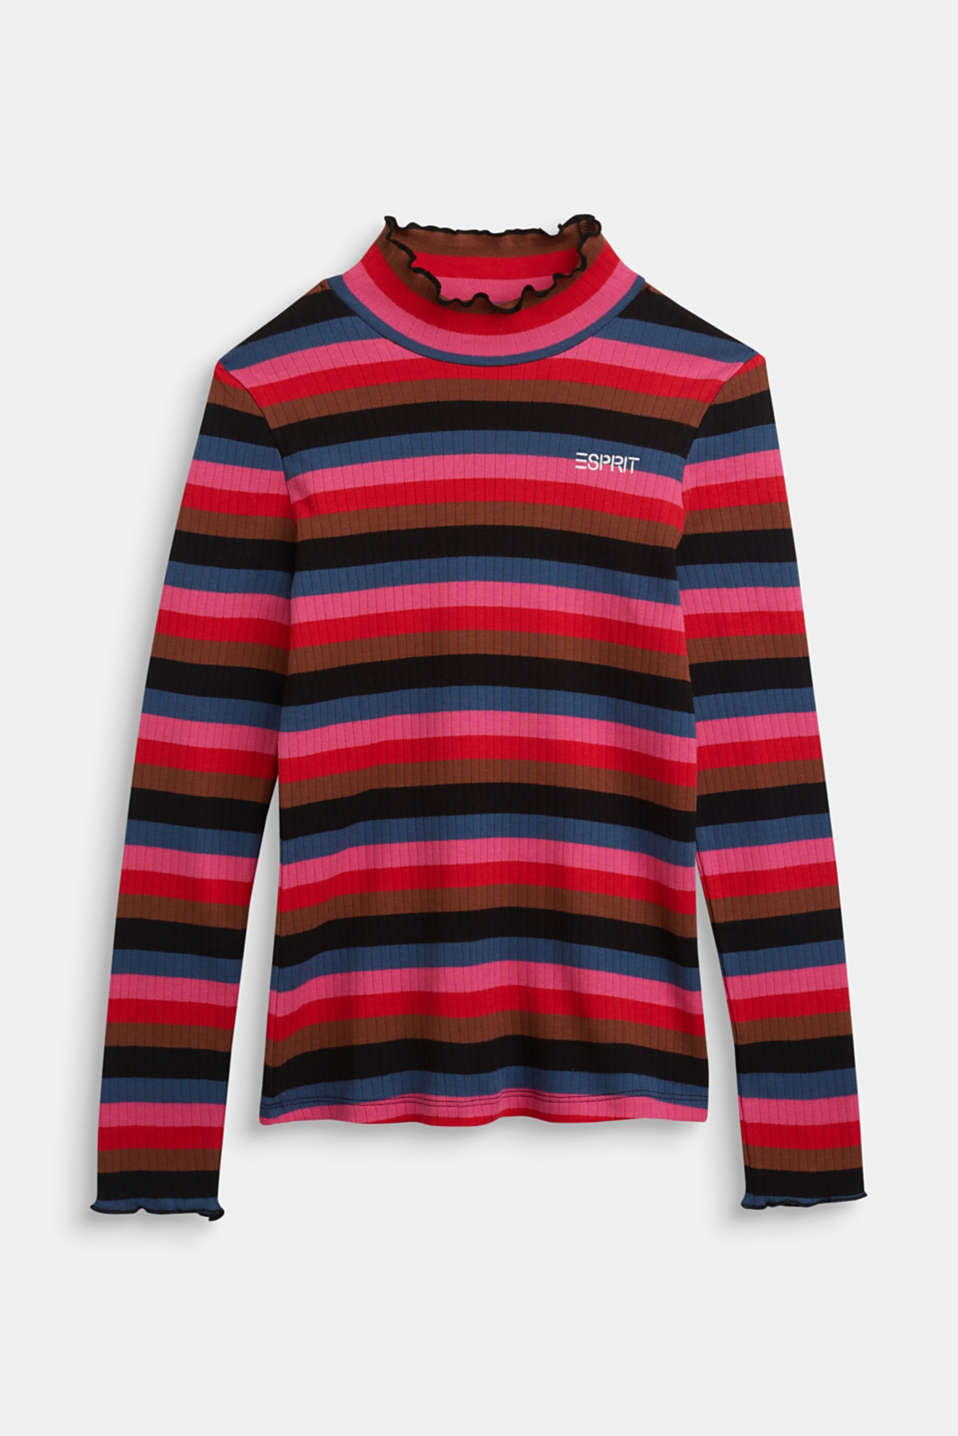 Esprit - Ribbed long sleeve top with stripes, 100% cotton